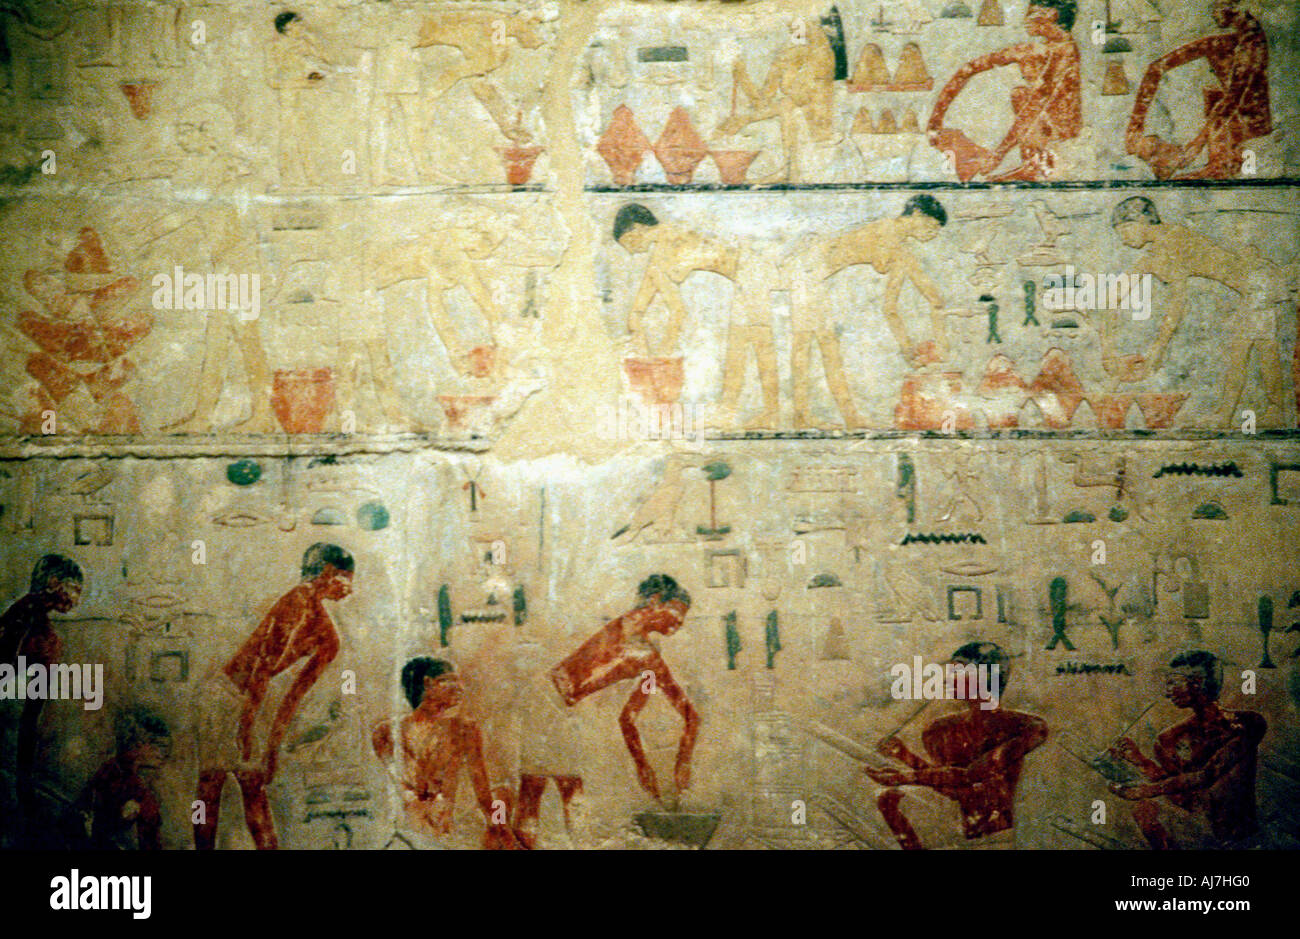 Ancient Egypt Wall Painting Stock Photos & Ancient Egypt Wall ...